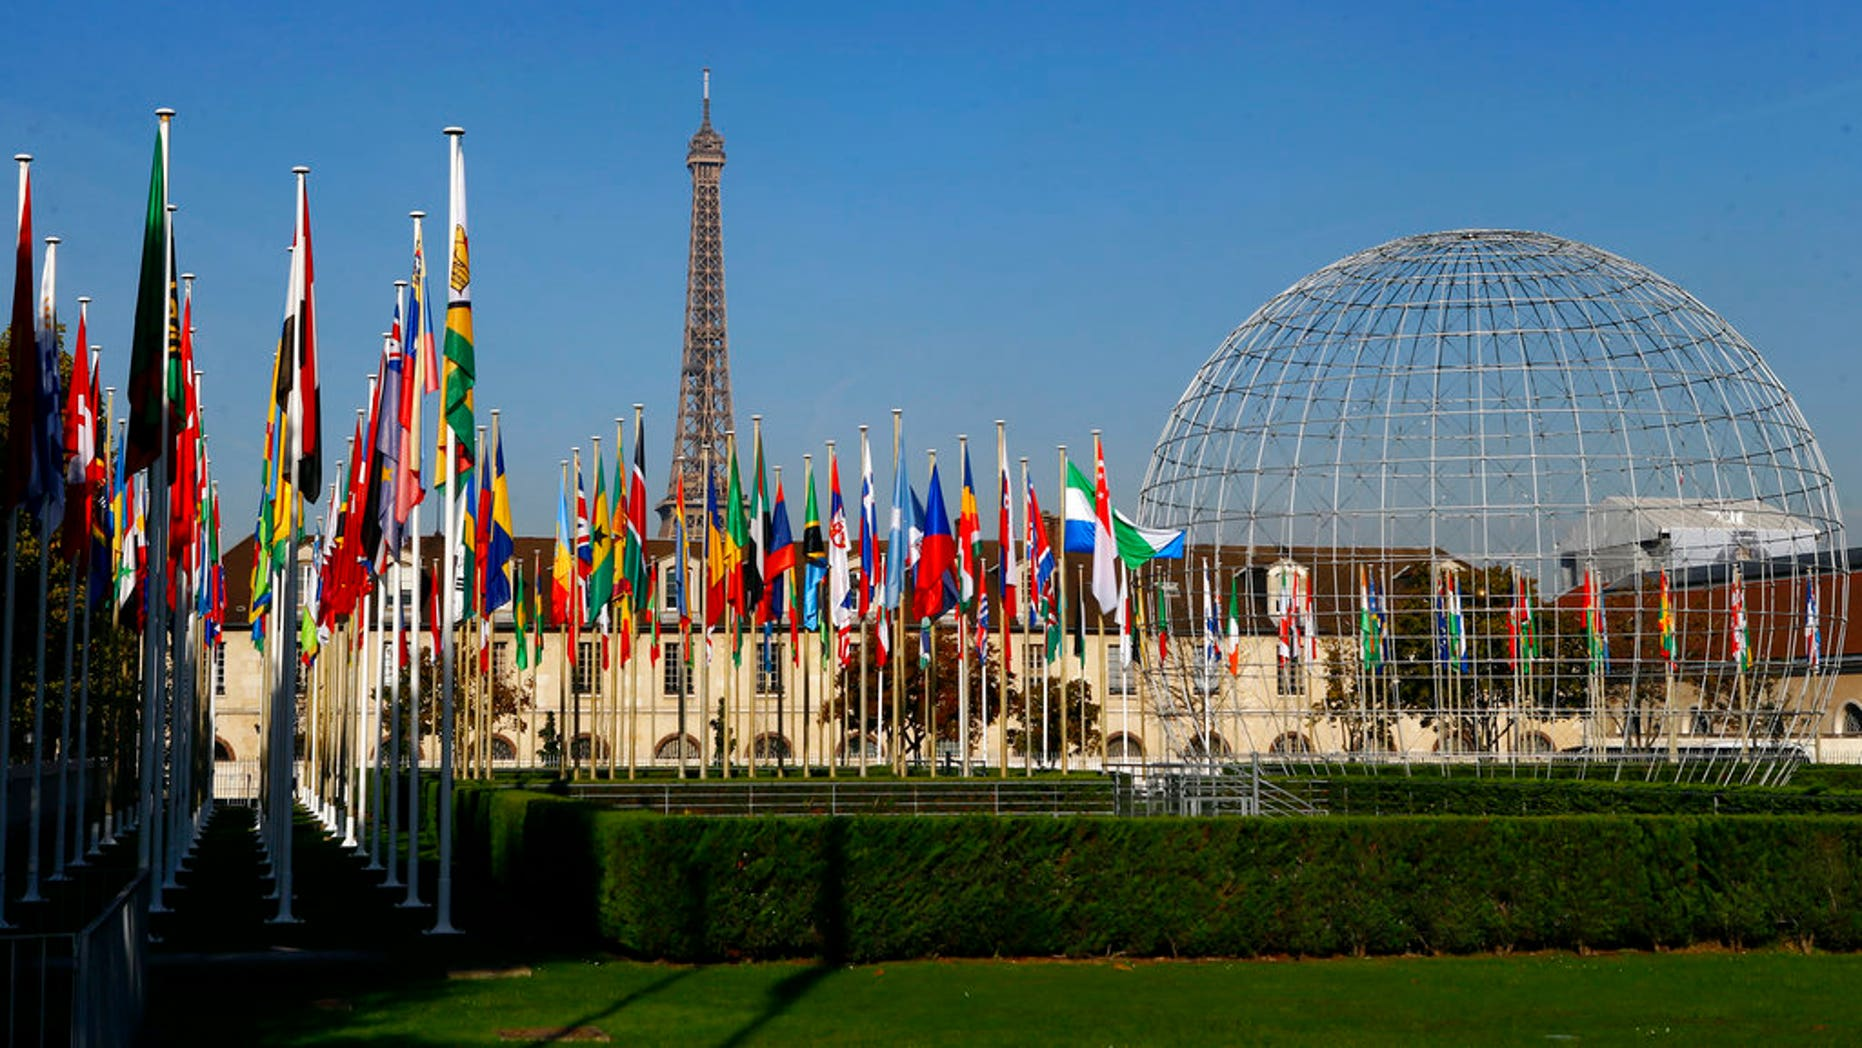 FILE - In this Tuesday Oct. 31, 2017 file picture, the Eiffel Tower, country flags and the Dome are seen from the garden of the United Nations Educational, Scientific and Cultural Organisation (UNESCO) headquarters building during the 39th session of the General Conference at the UNESCO headquarters in Paris, France. The United States and Israel have quit the U.N.'s educational, scientific and cultural agency, arguing the organization fosters anti-Israel bias. (AP Photo/Francois Mori, File)